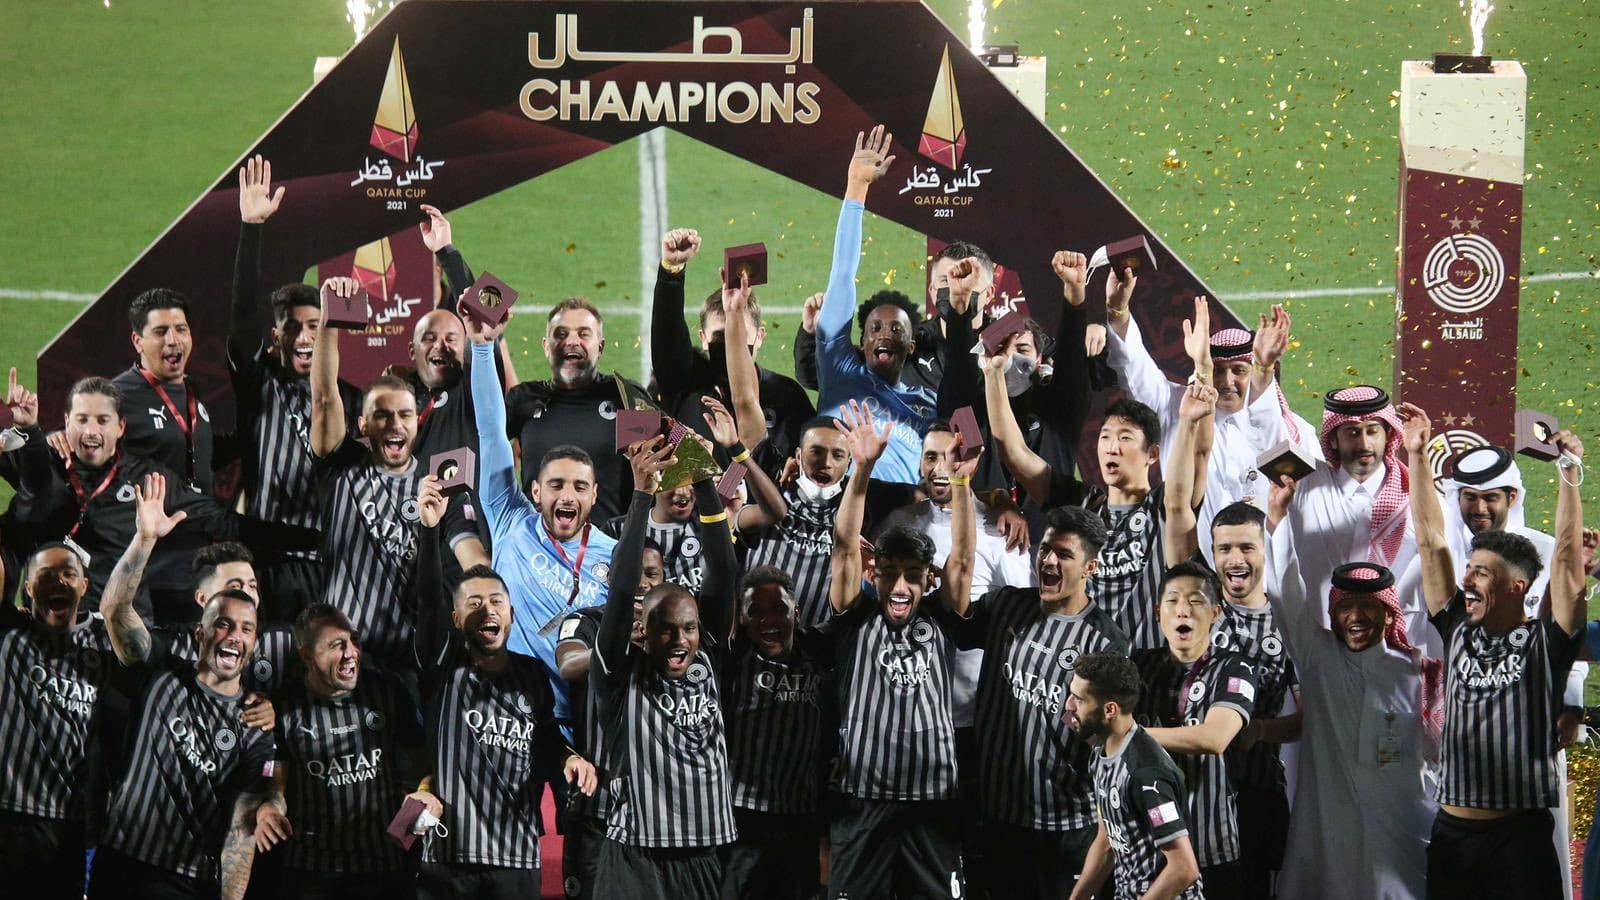 Al Sadd drub Al Duhail 2-0 to retain Qatar Cup crown